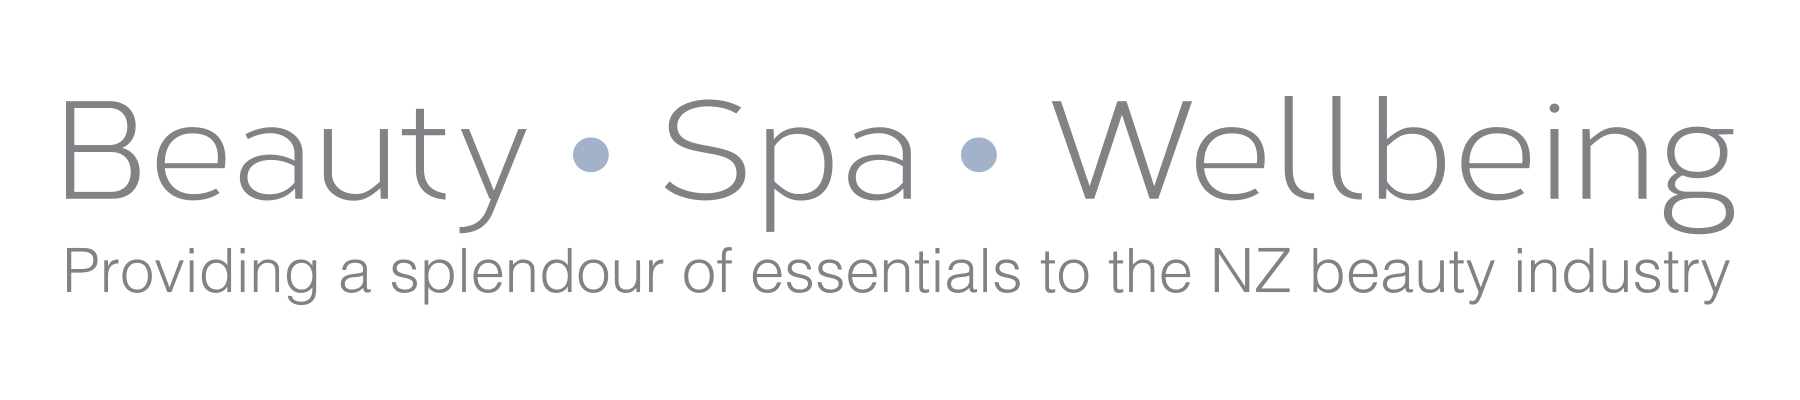 Beauty Spa Wellbeing